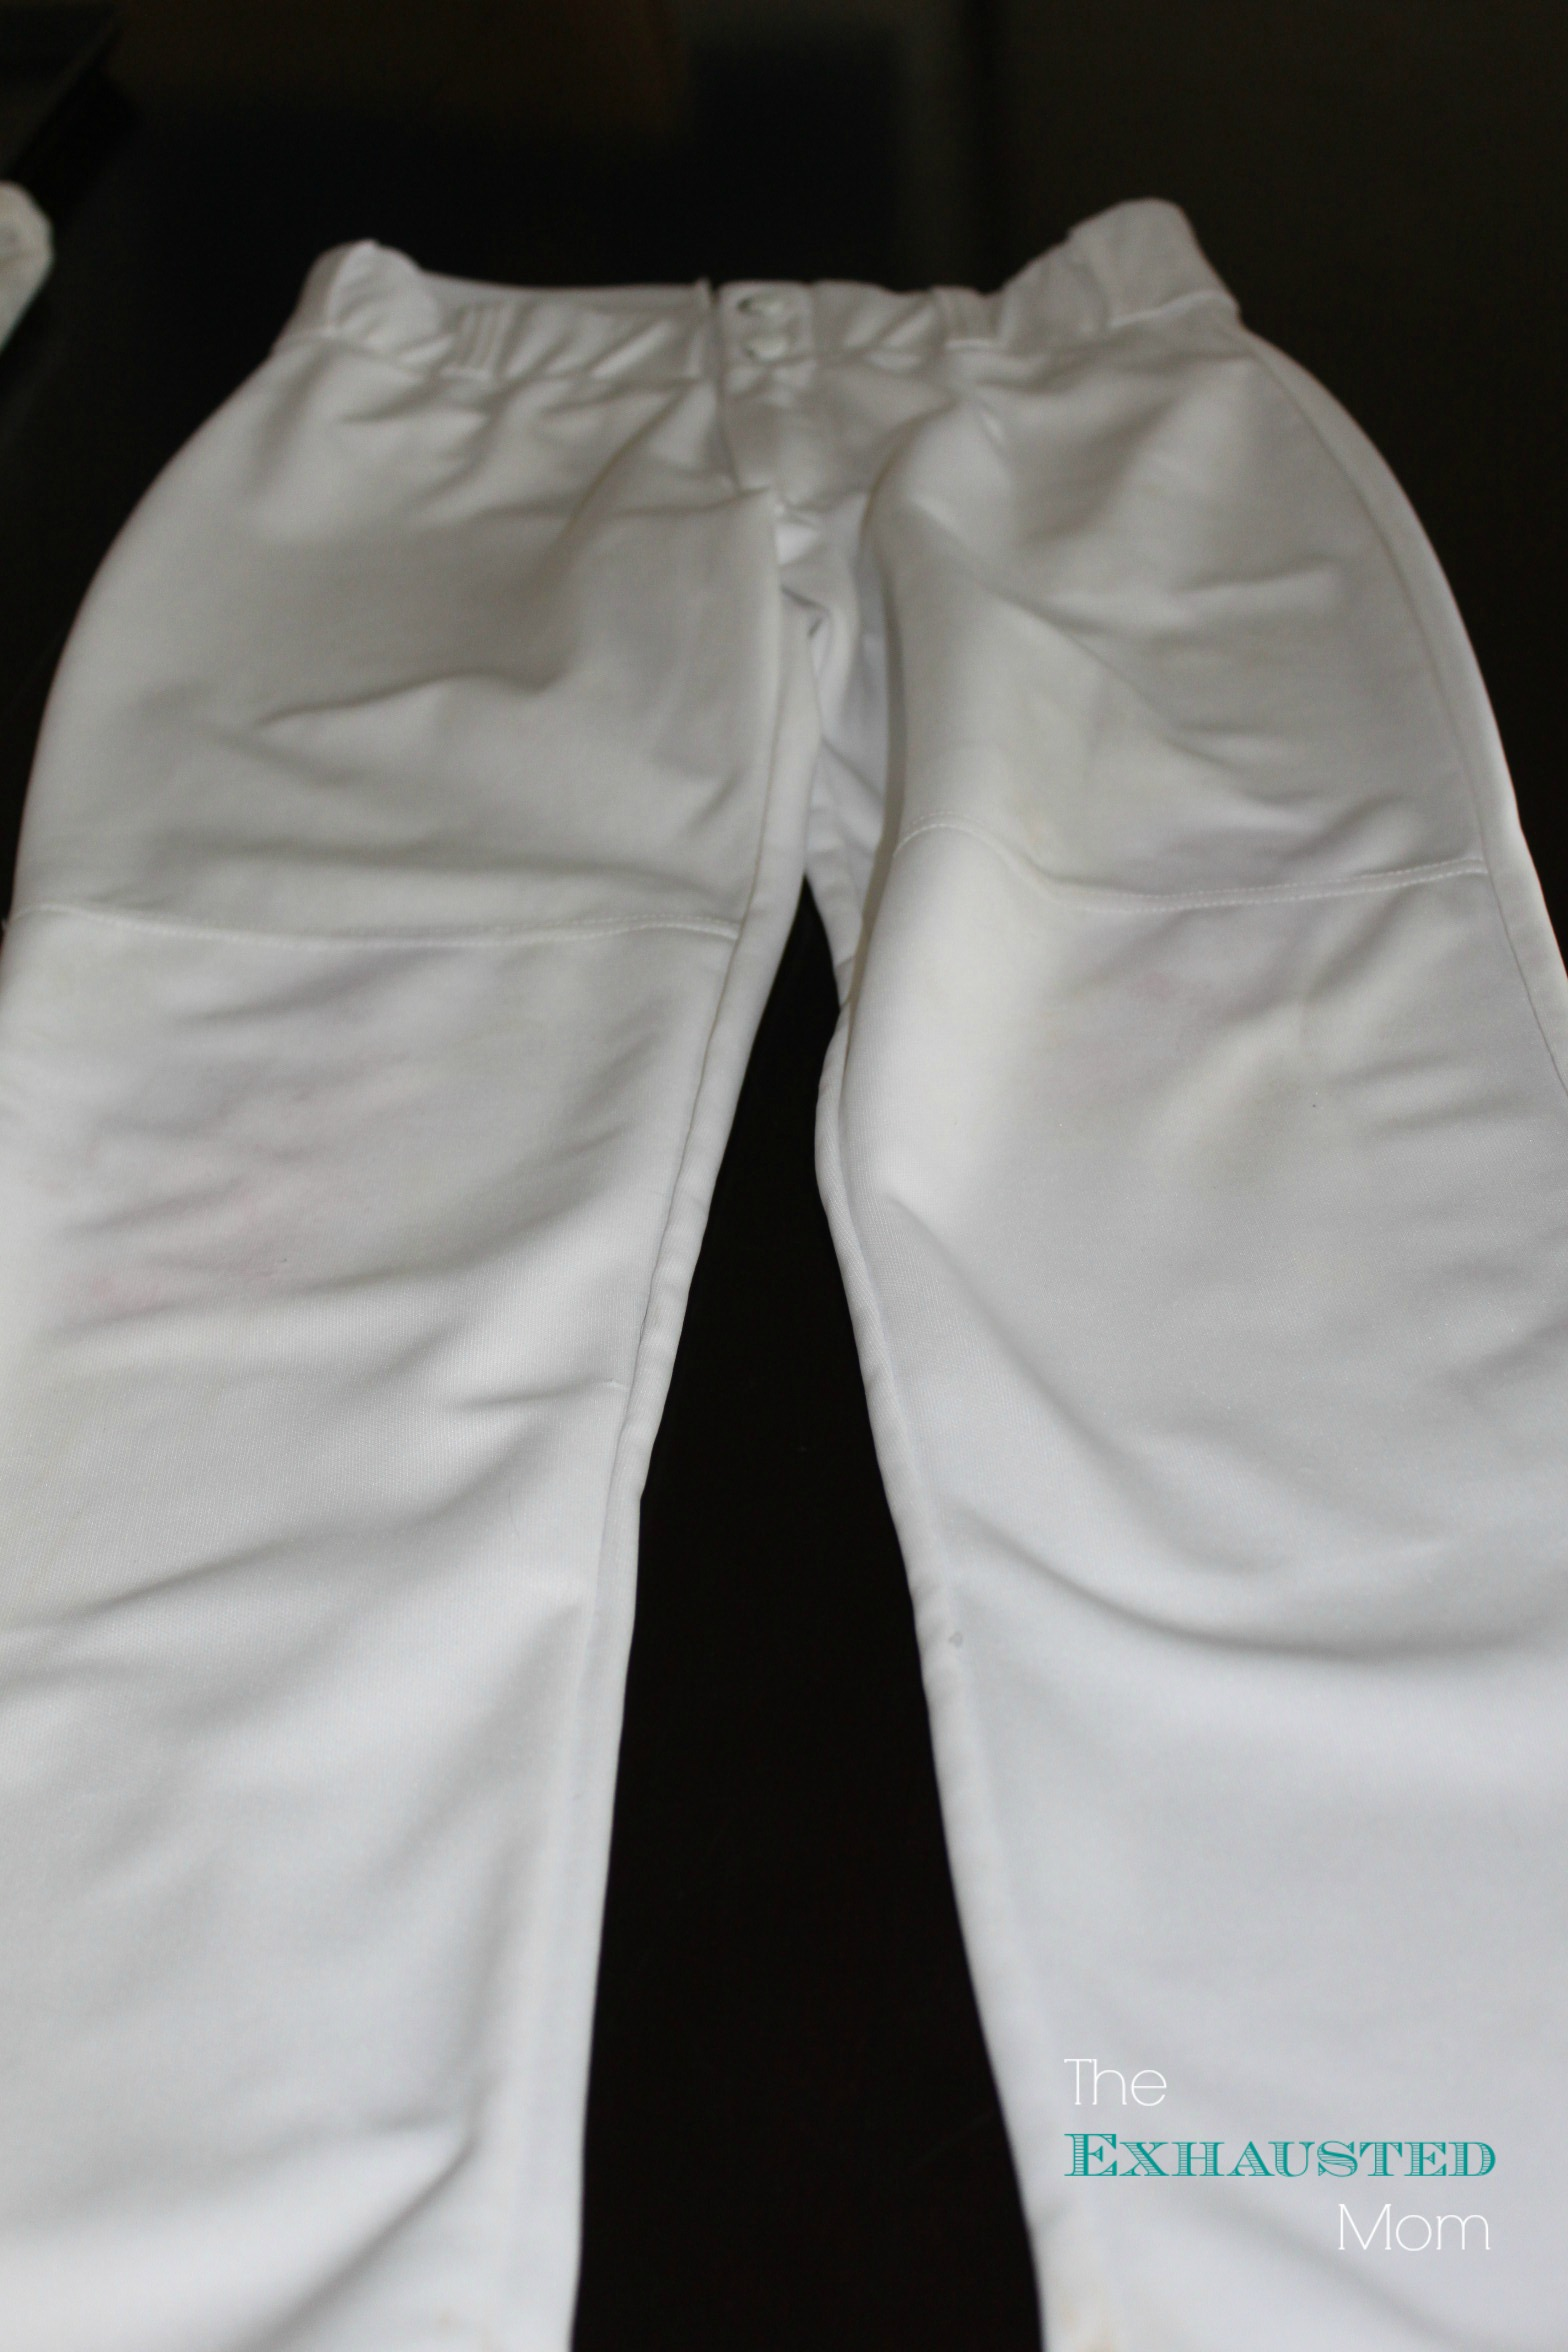 Clean baseball pants